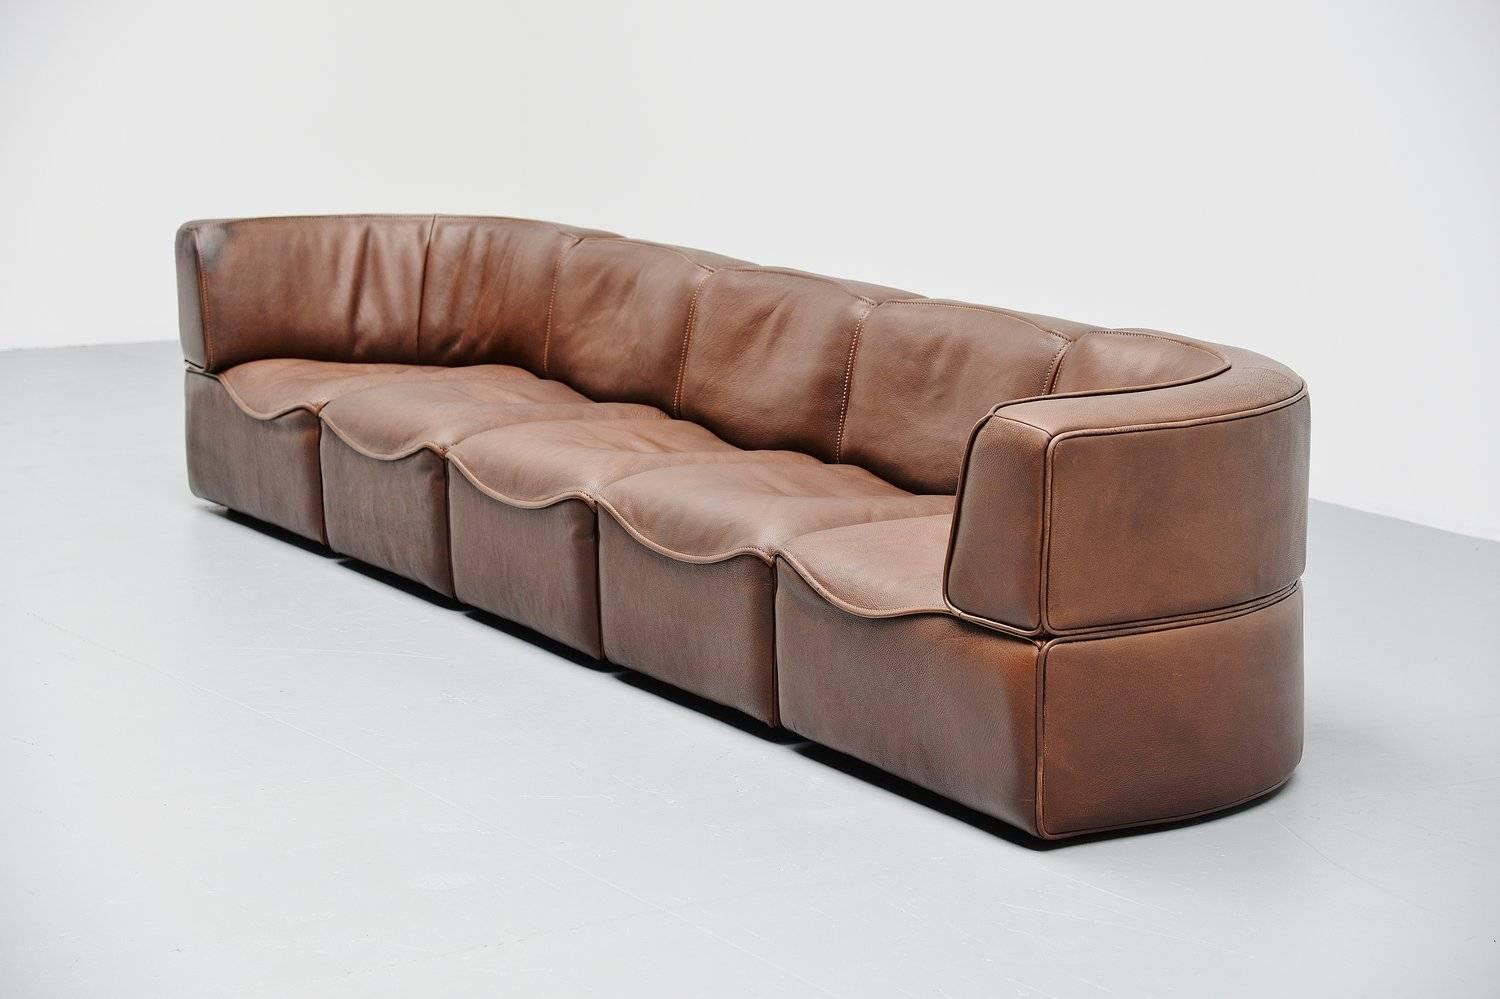 de sede ds15 element sofa in buffalo leather switzerland 1970 at 1stdibs. Black Bedroom Furniture Sets. Home Design Ideas